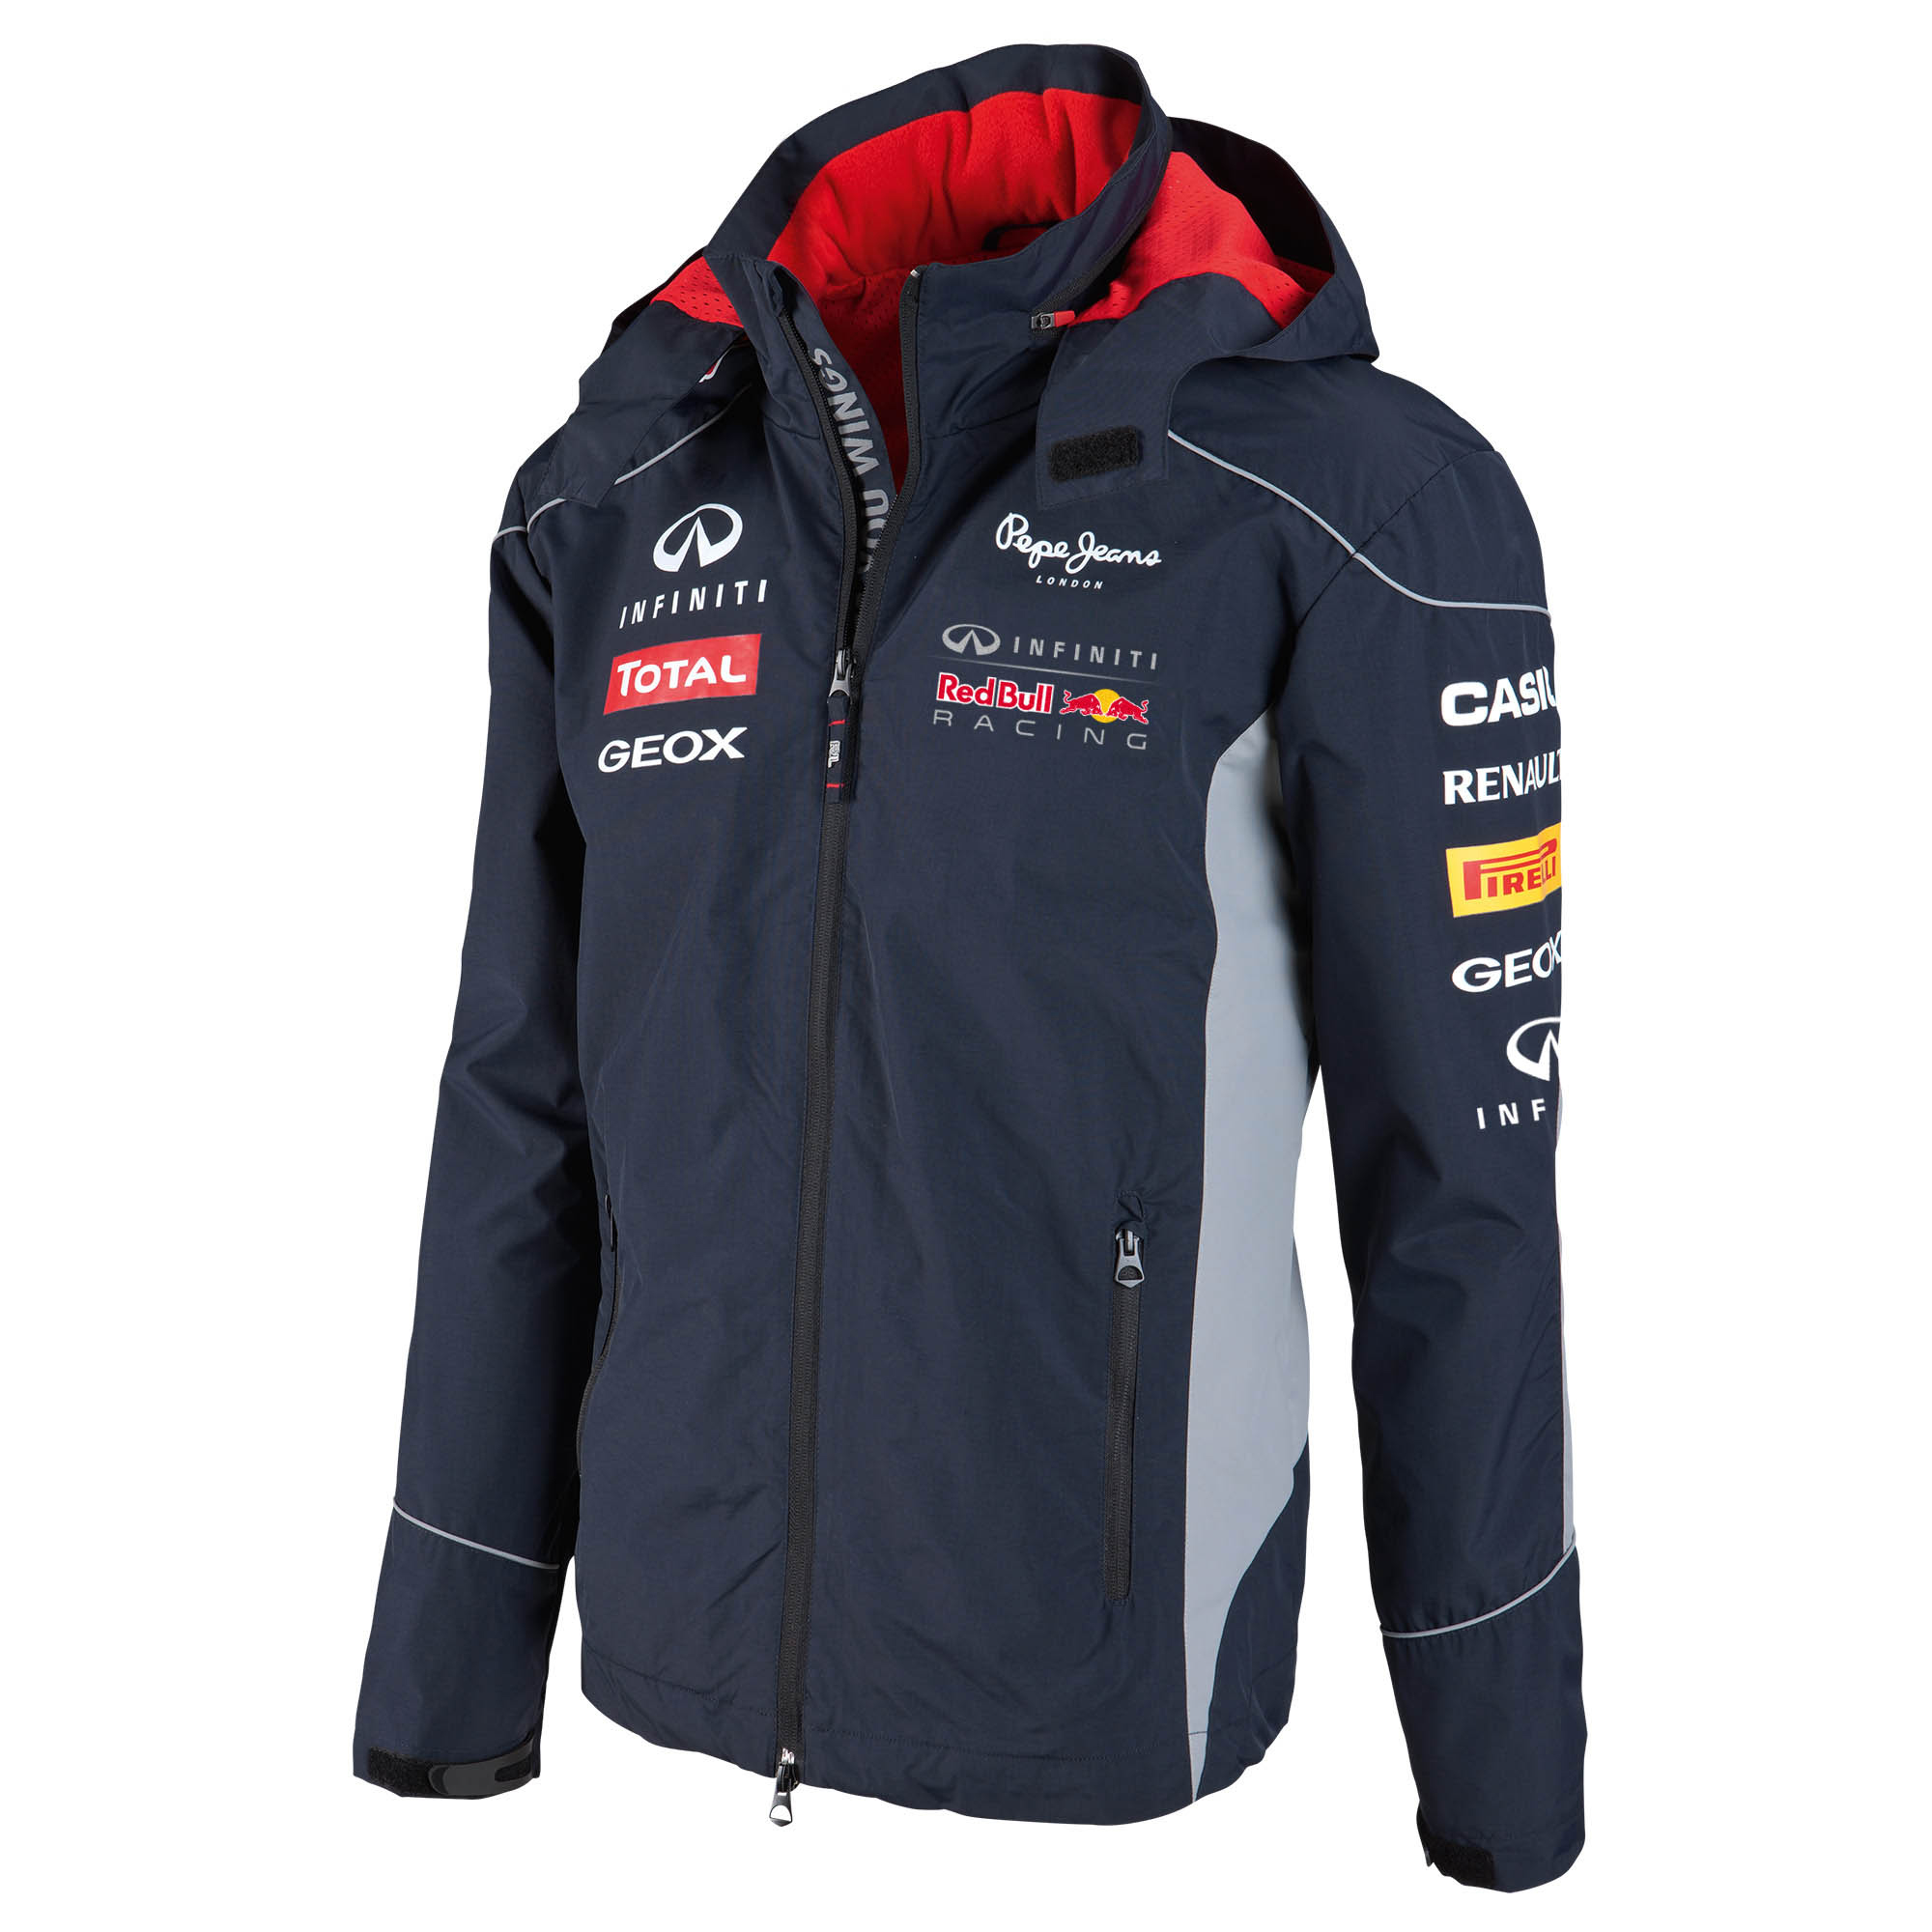 Infiniti Red Bull Racing 2013 Official Teamline Rain Jacket